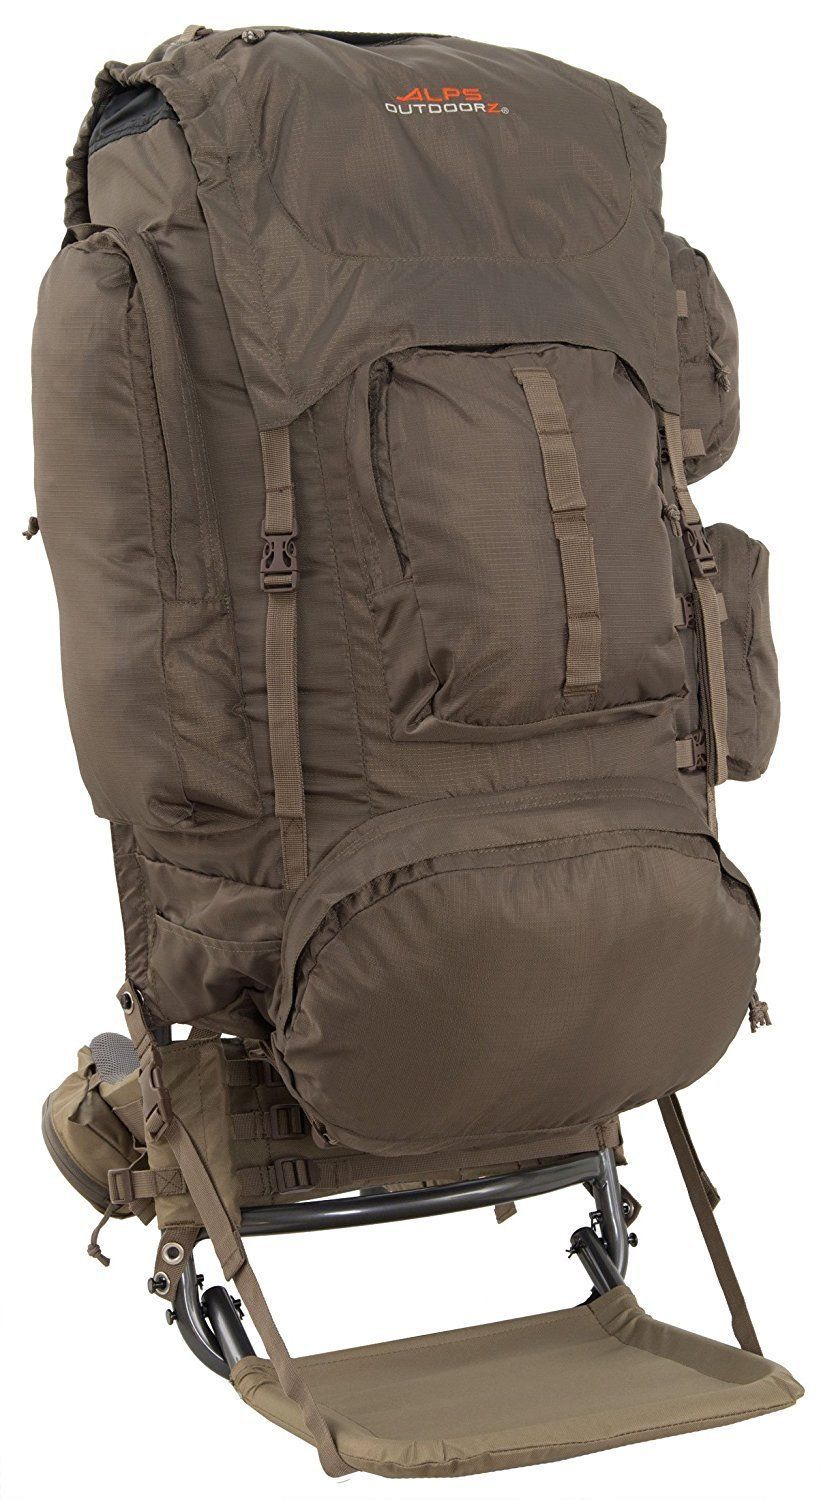 Hunting Rifle BackPack Frame Bag Outdoor and 50 similar items